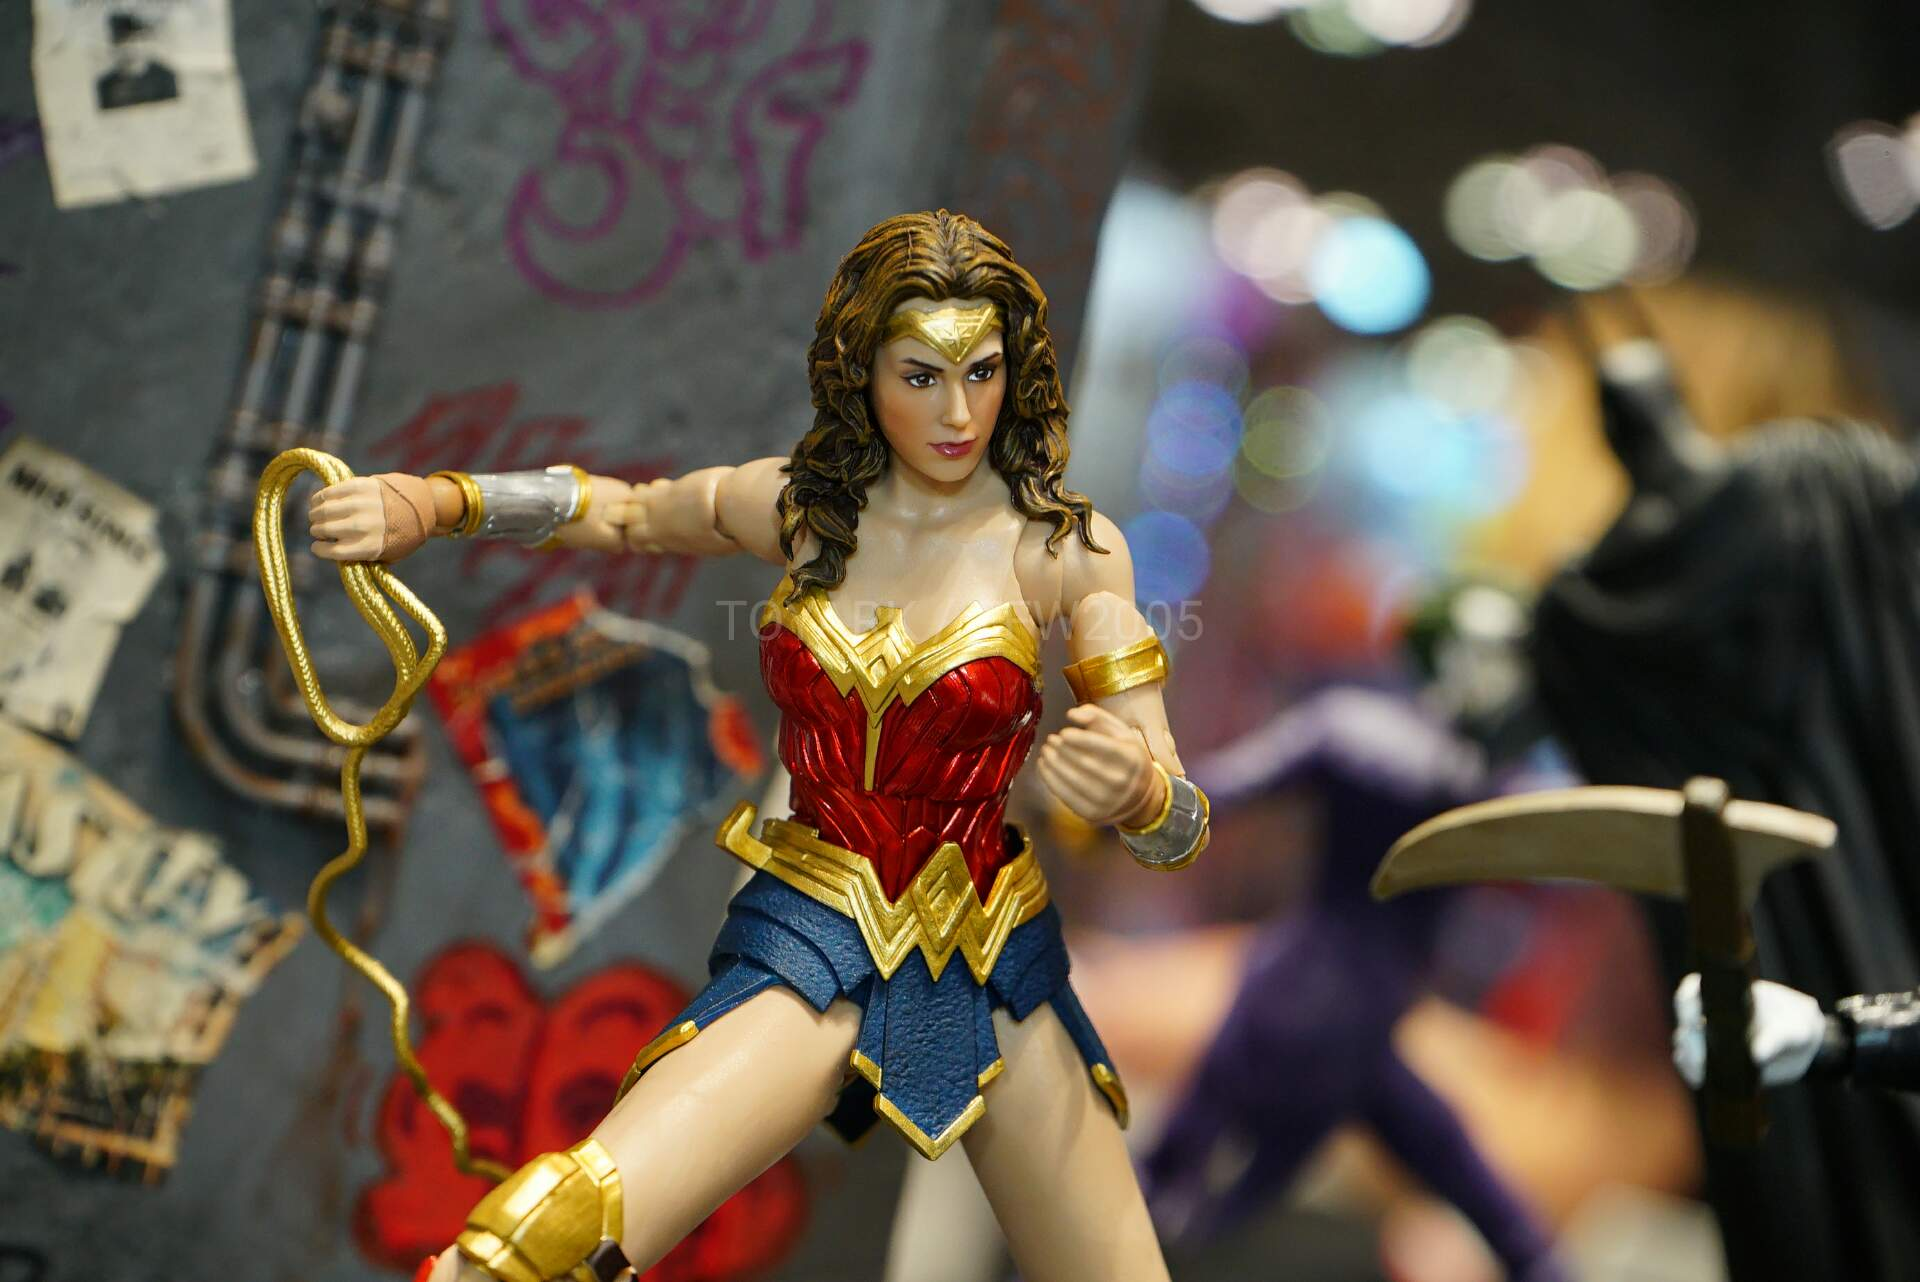 Toy-Fair-2020-McFarlane-DC-007.jpg